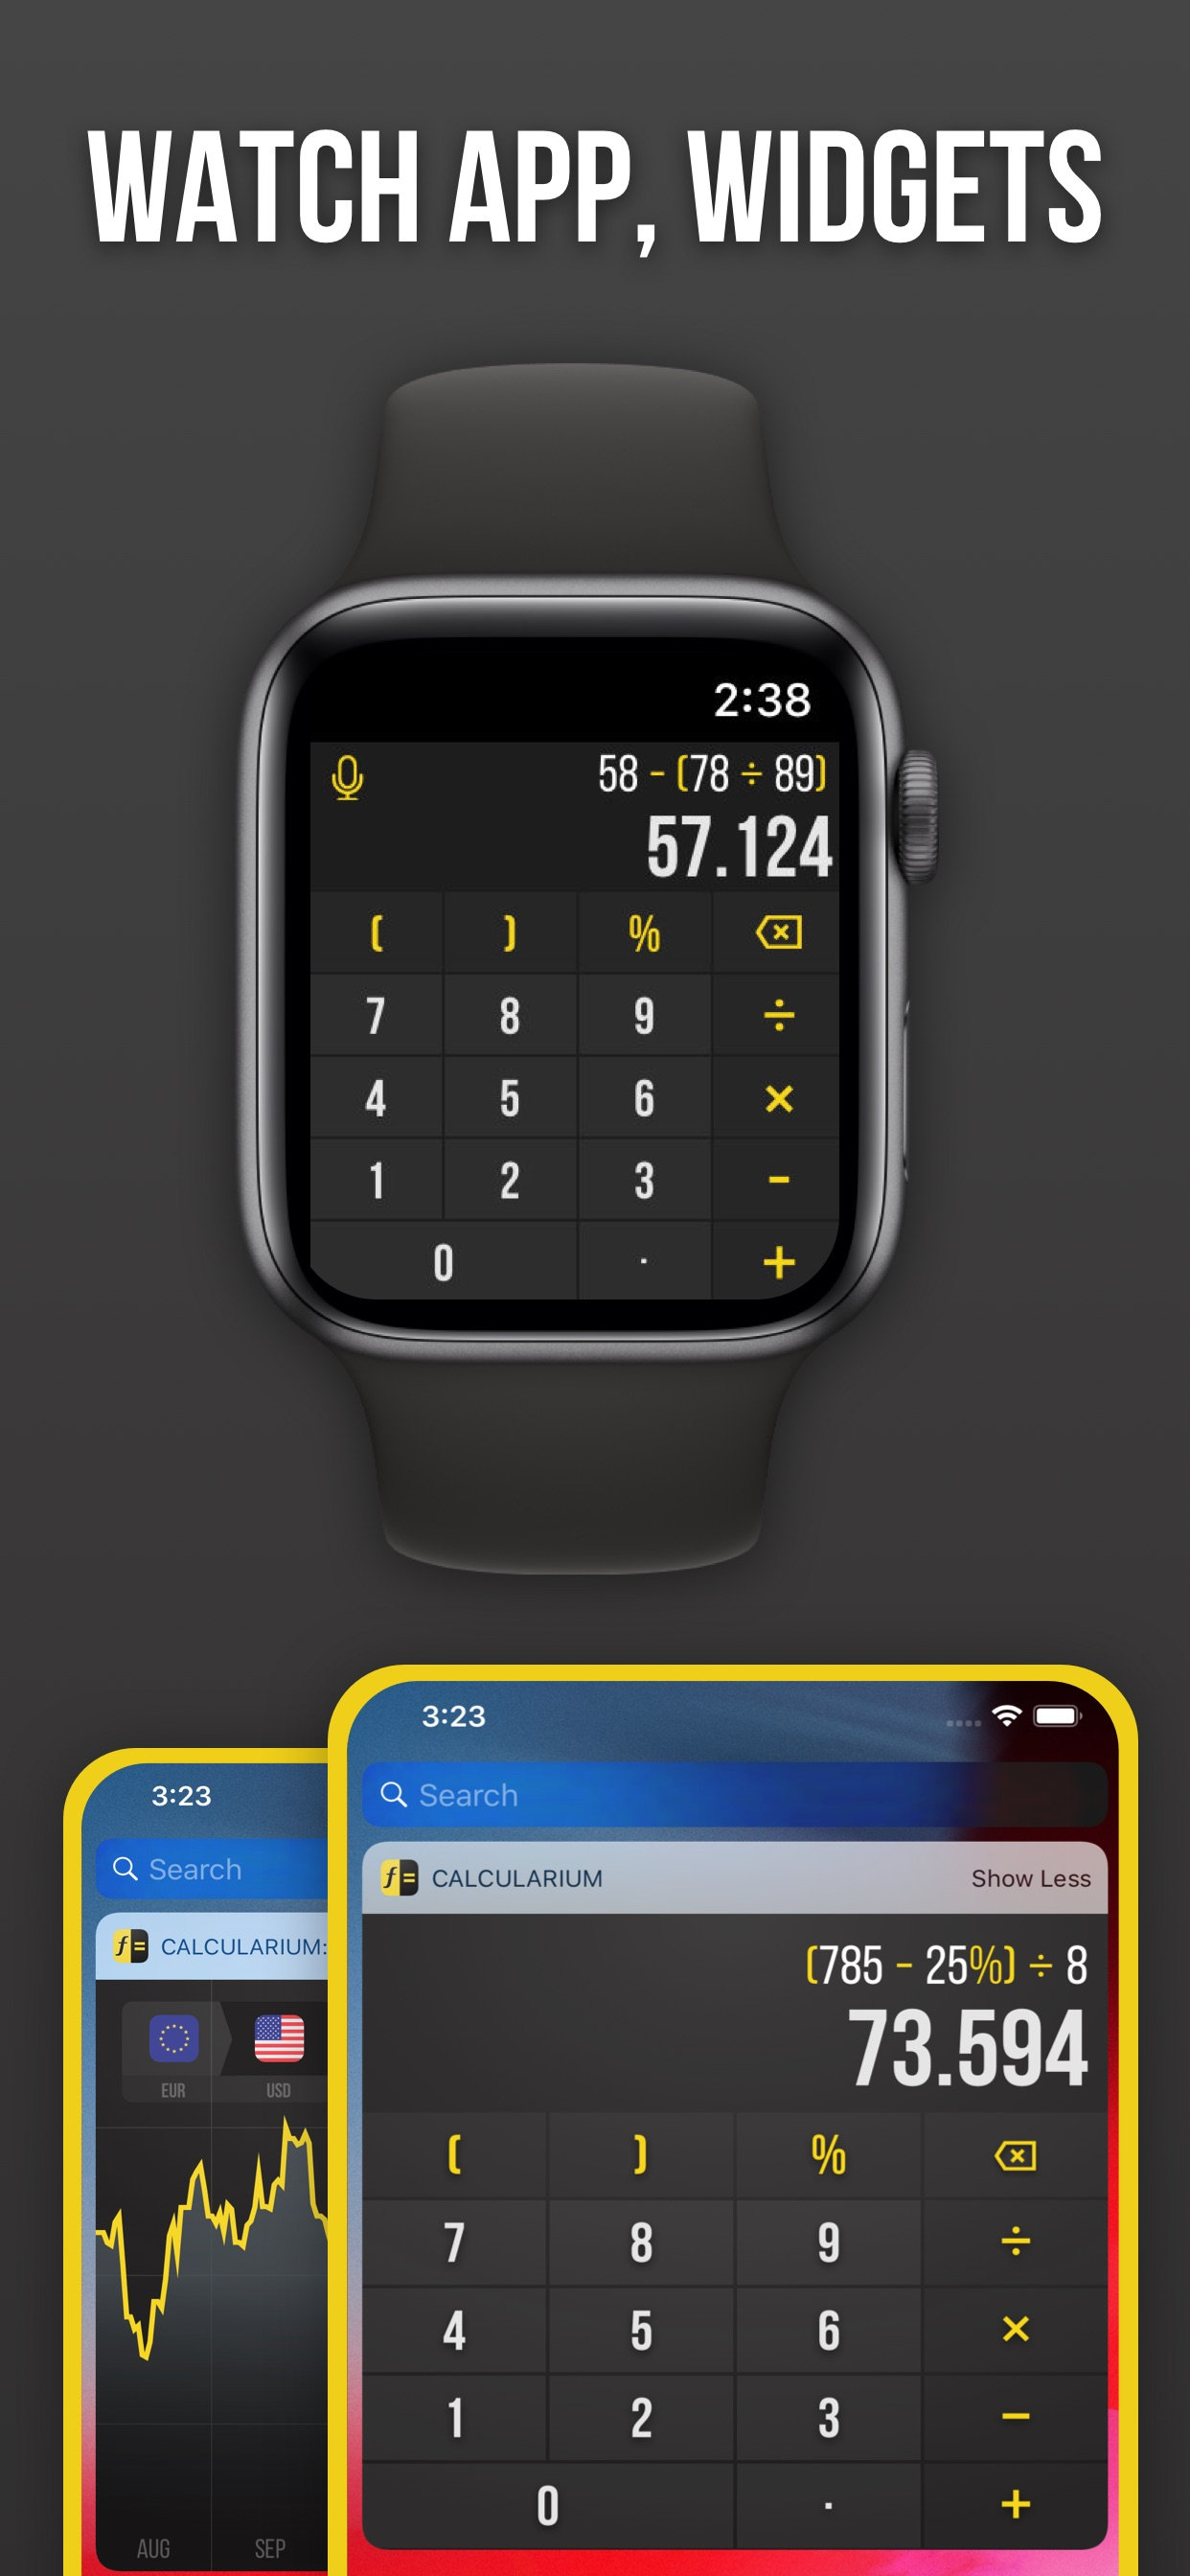 Watch App, Widgets